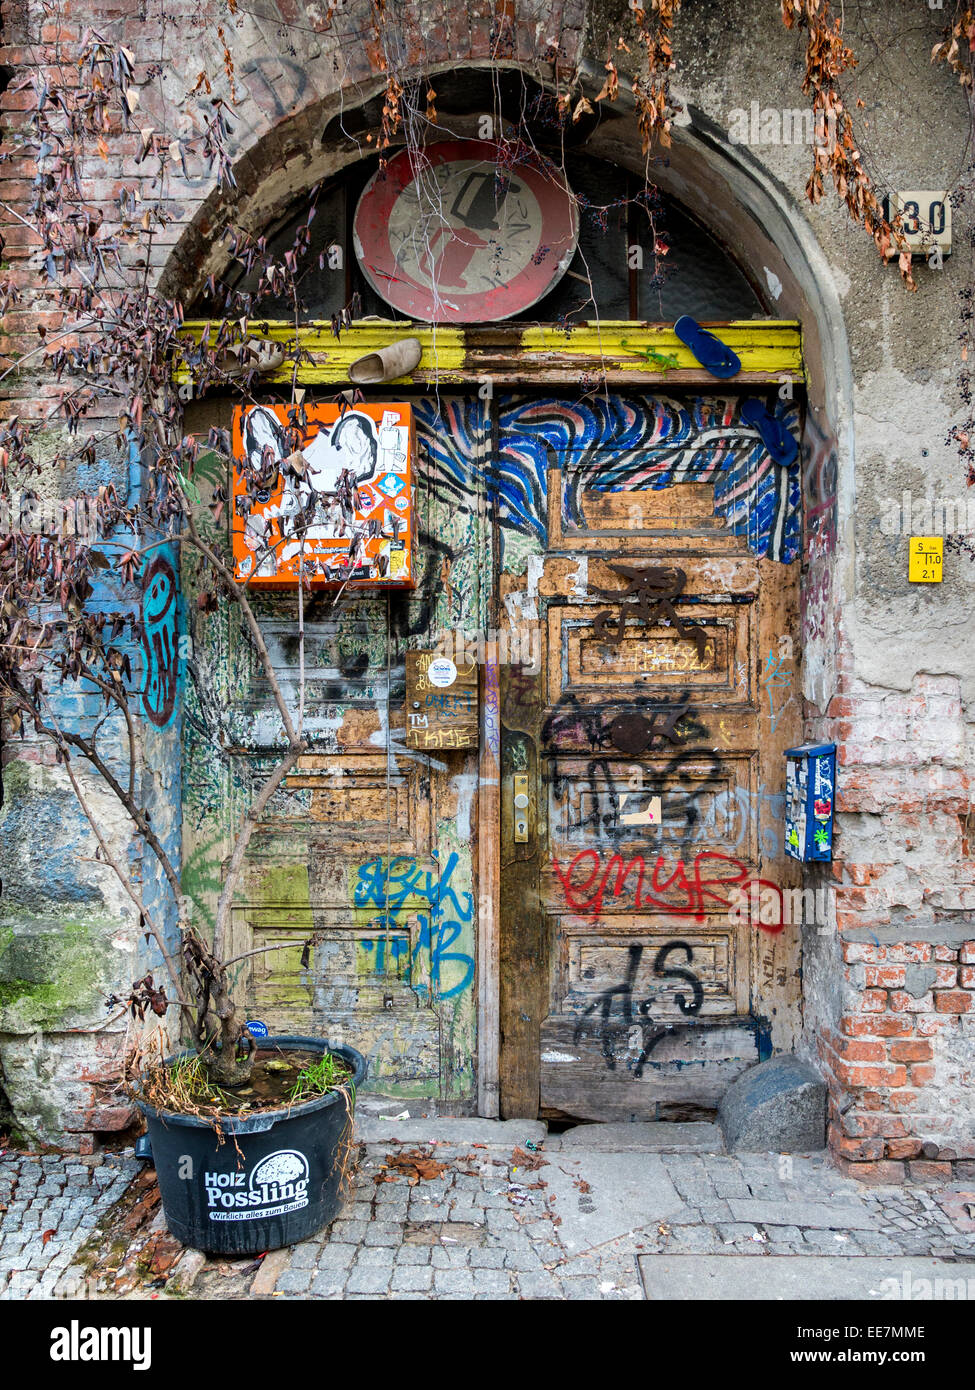 graffiti stickers stock photos graffiti stickers stock images building entrance door covered in graffiti stickers old shoes and dead plants tucholskystrasse